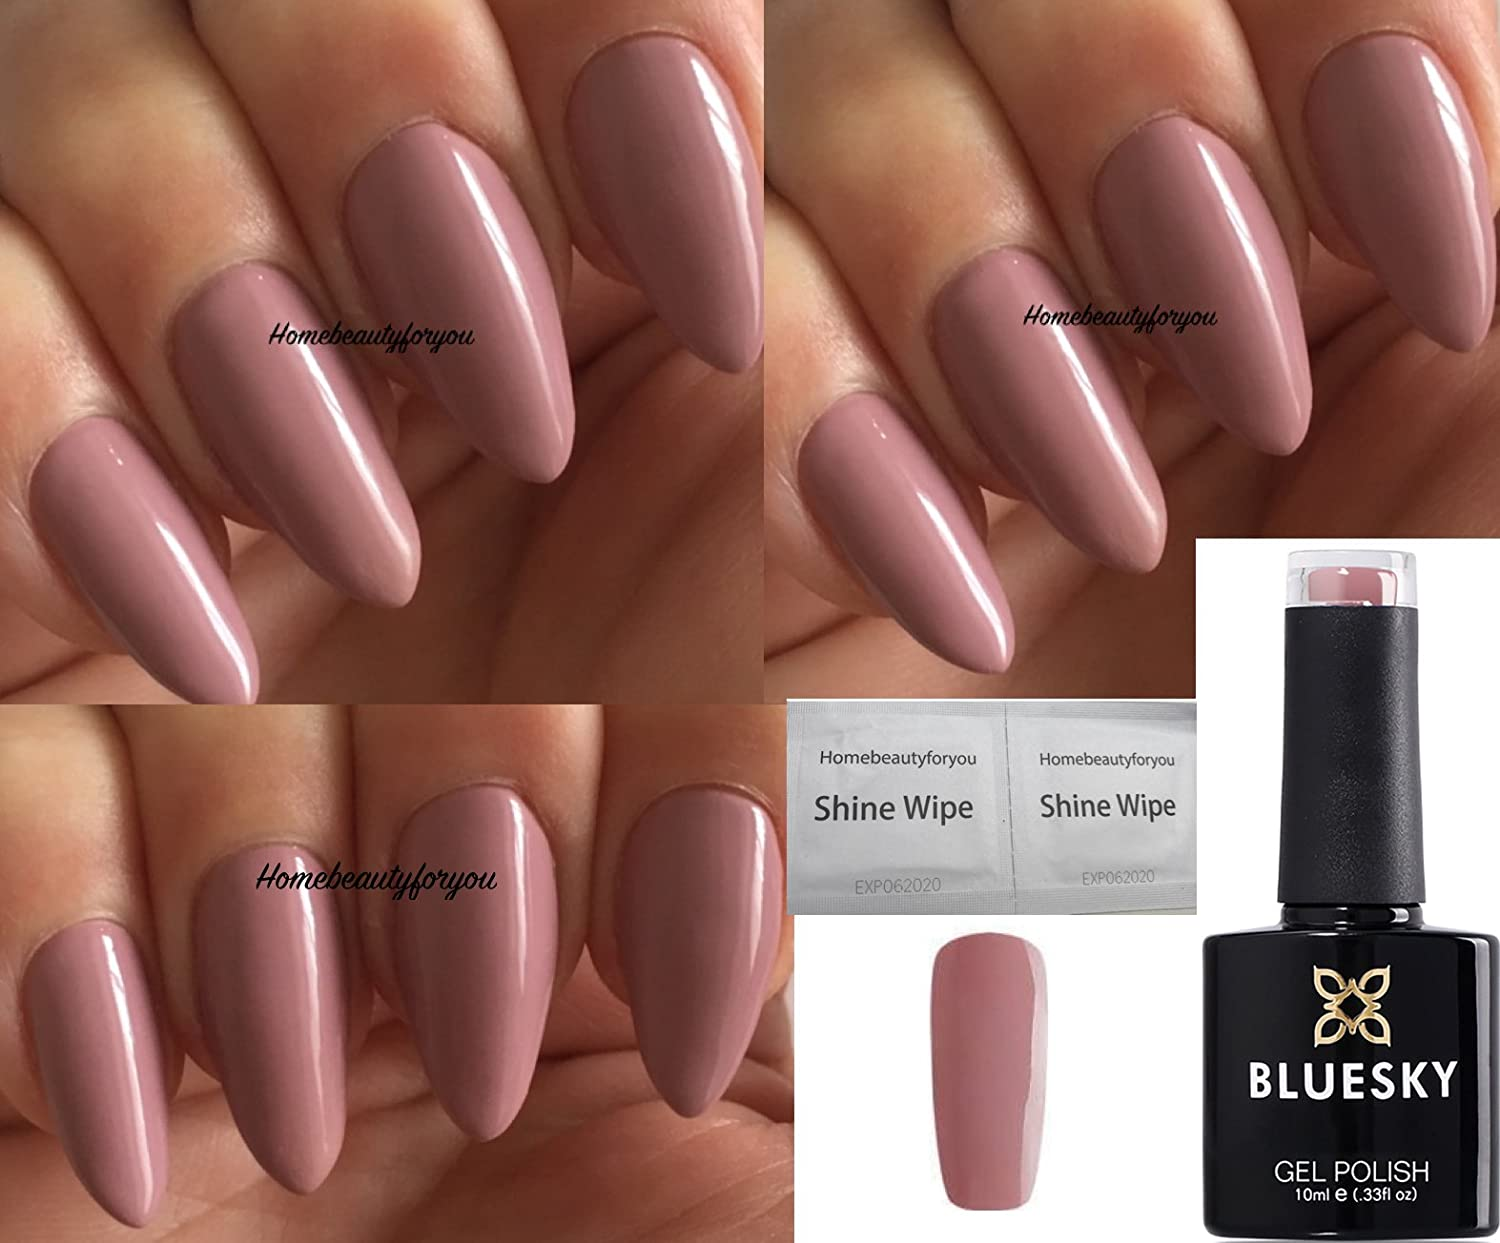 Bluesky DC72 Deep Fawn, Soft Mauve Dence Range Nail Gel Polish UV LED Soak Off 10ml PLUS 2 Luvlinail Shine Wipes LTD